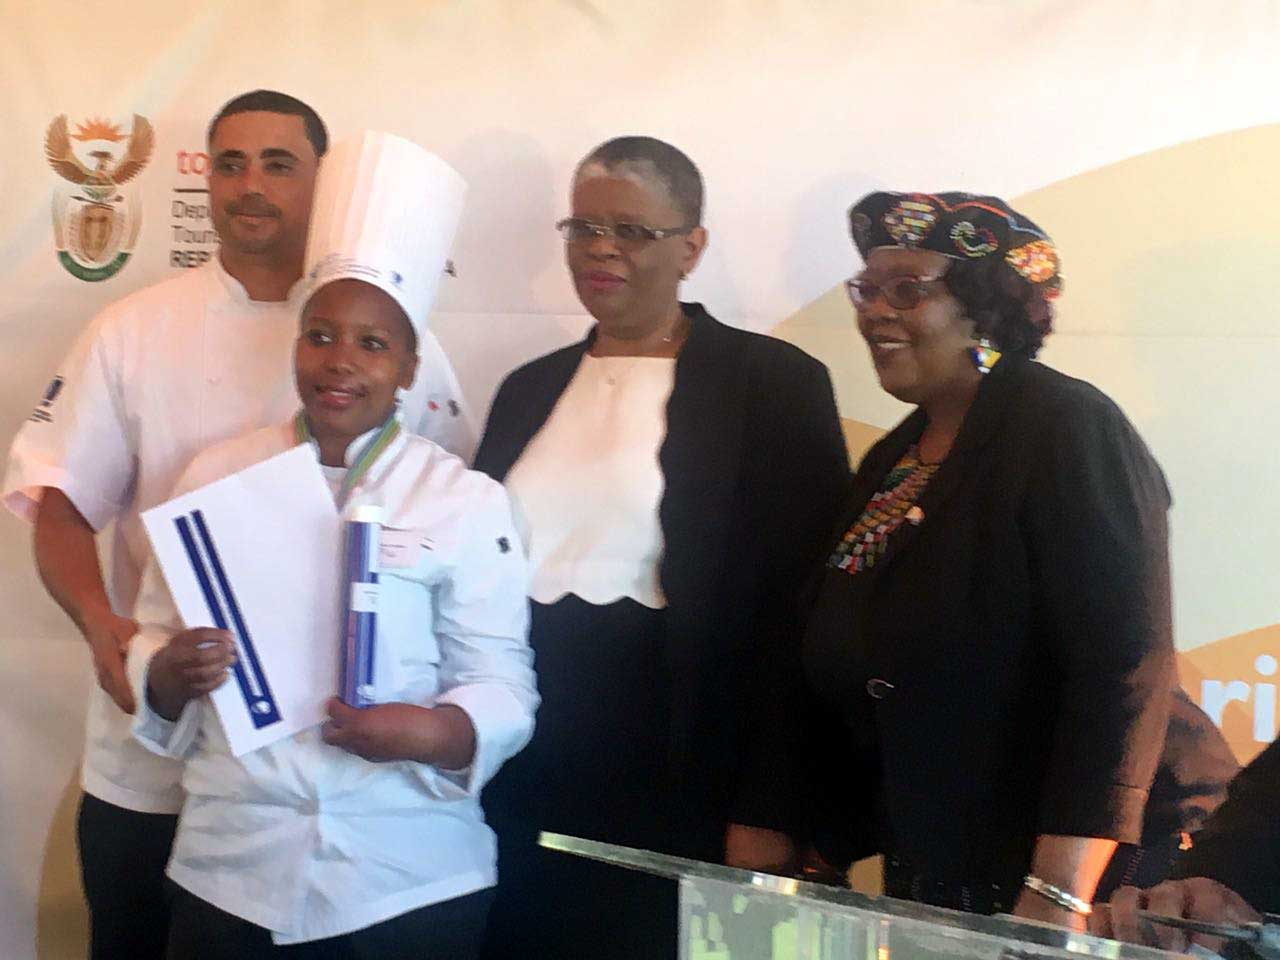 KwaZulu-Natal young chefs graduate from tourism programme with international accreditation